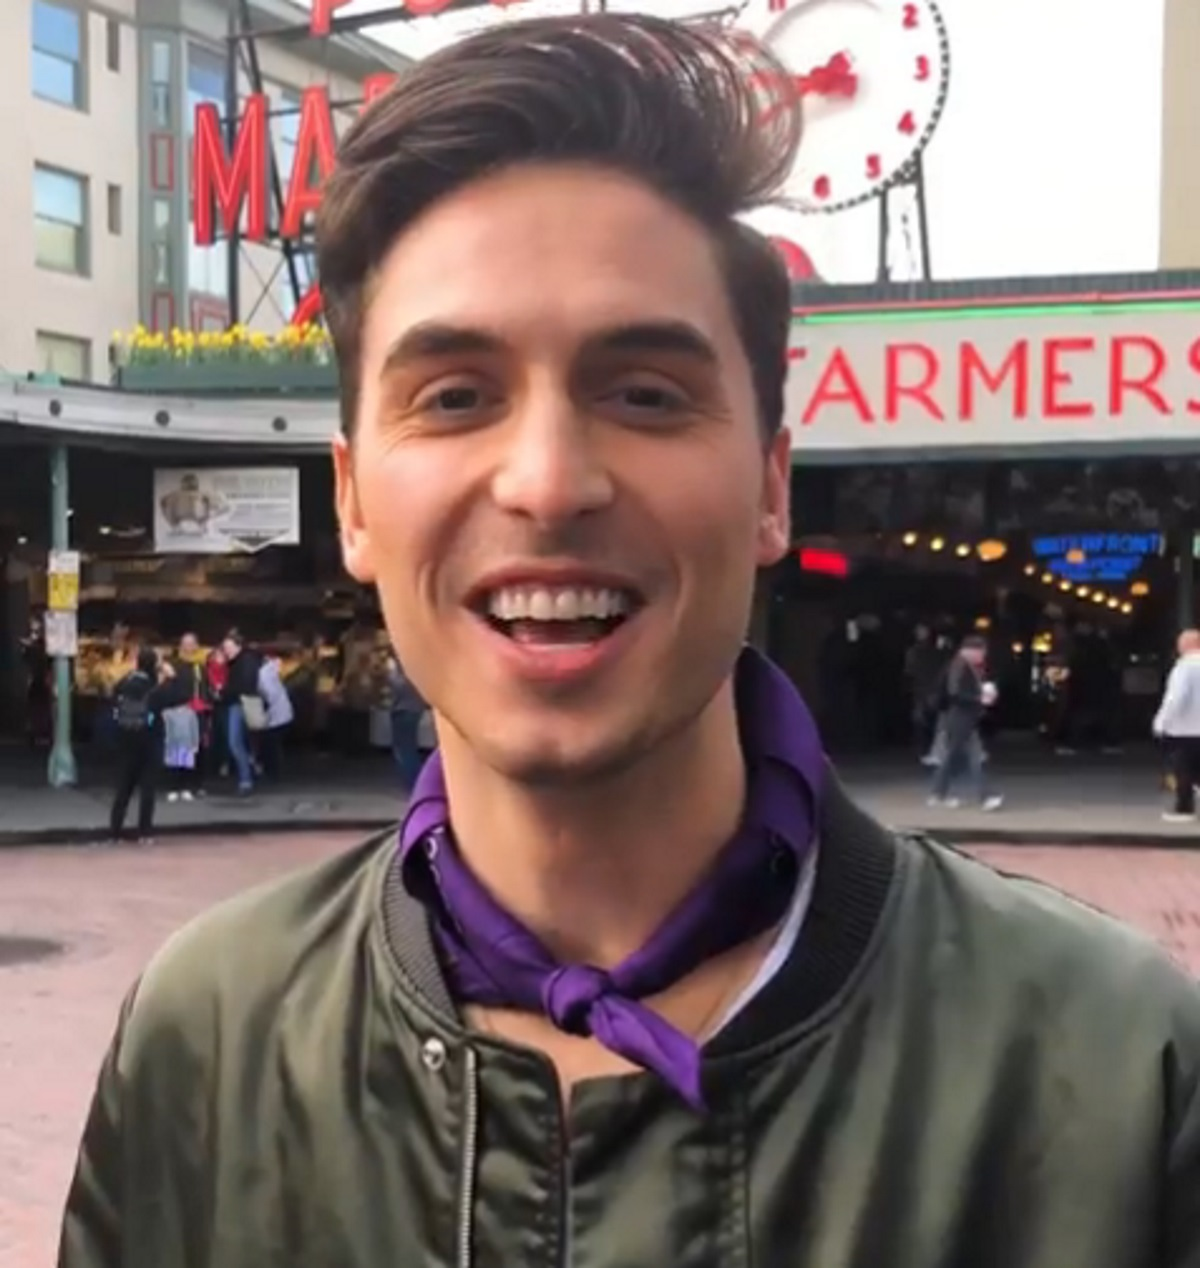 Actor and comedian Benito Skinner performs an impression of Queer Eye star Antoni Porowski.